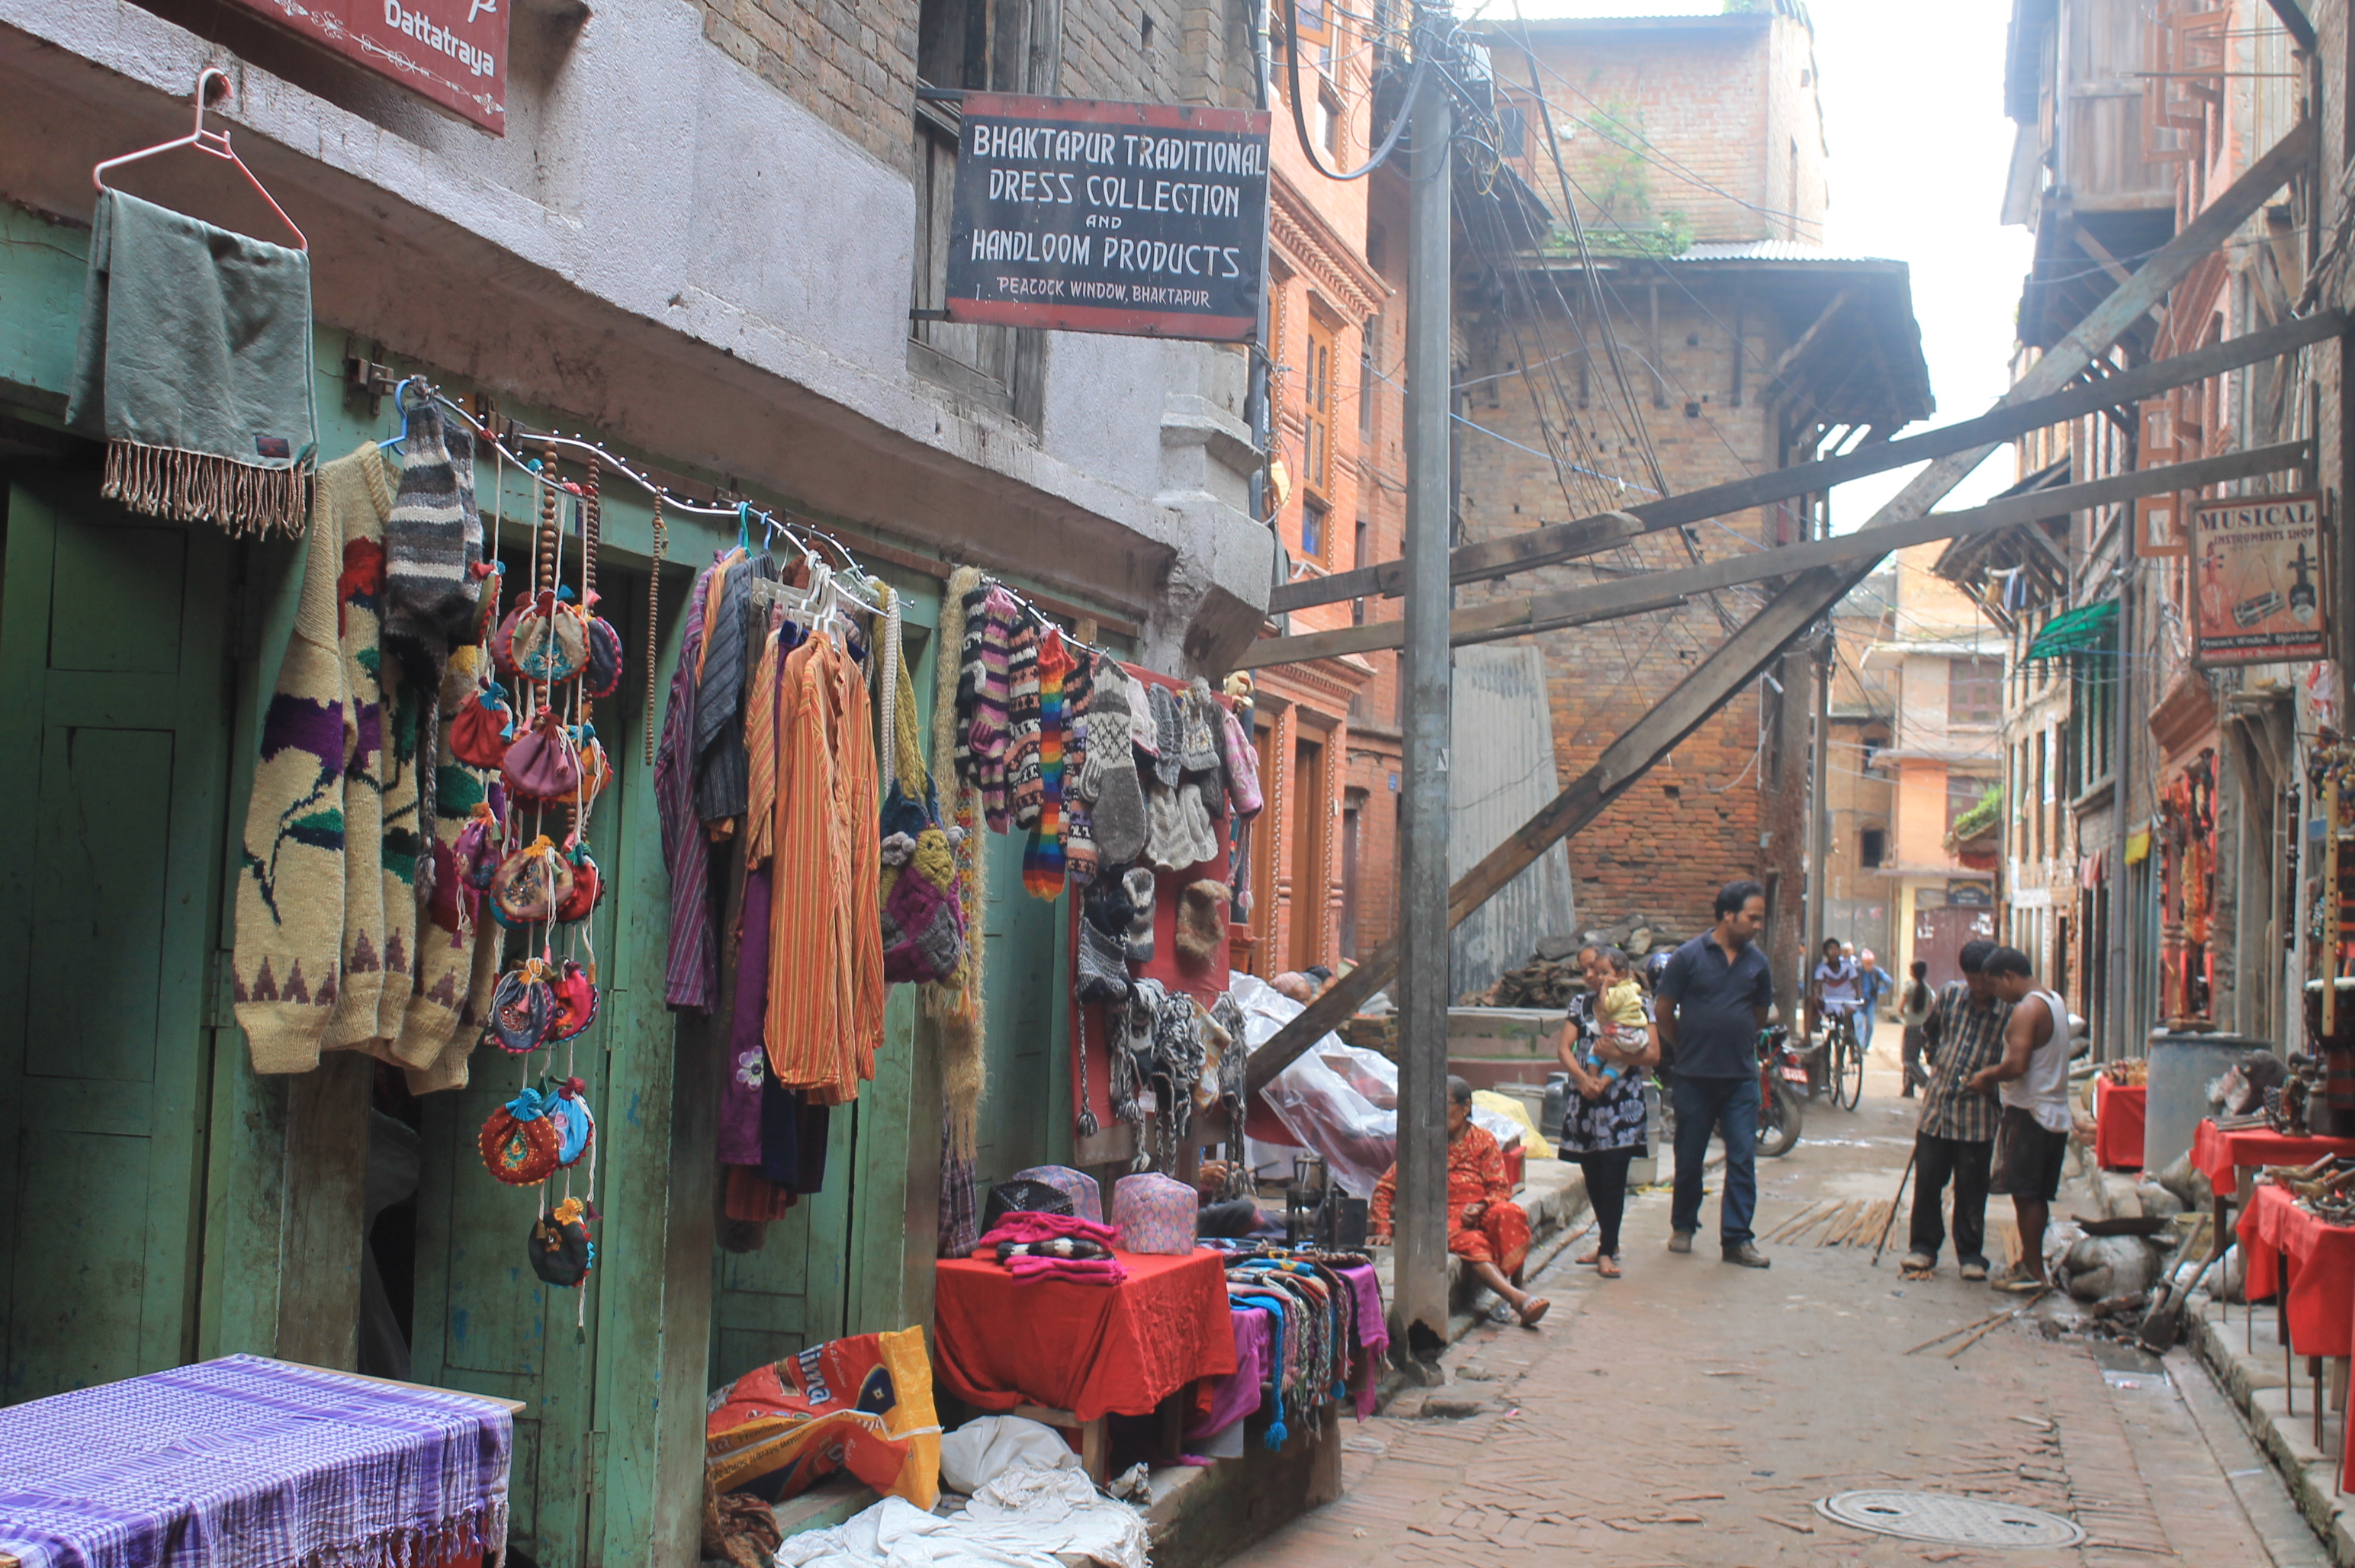 bhaktapur a place of god 2018-7-14 suffering and hope: christianity and ethics among the newars of bhaktapur  but god continues to  while their elders have a place to live out.